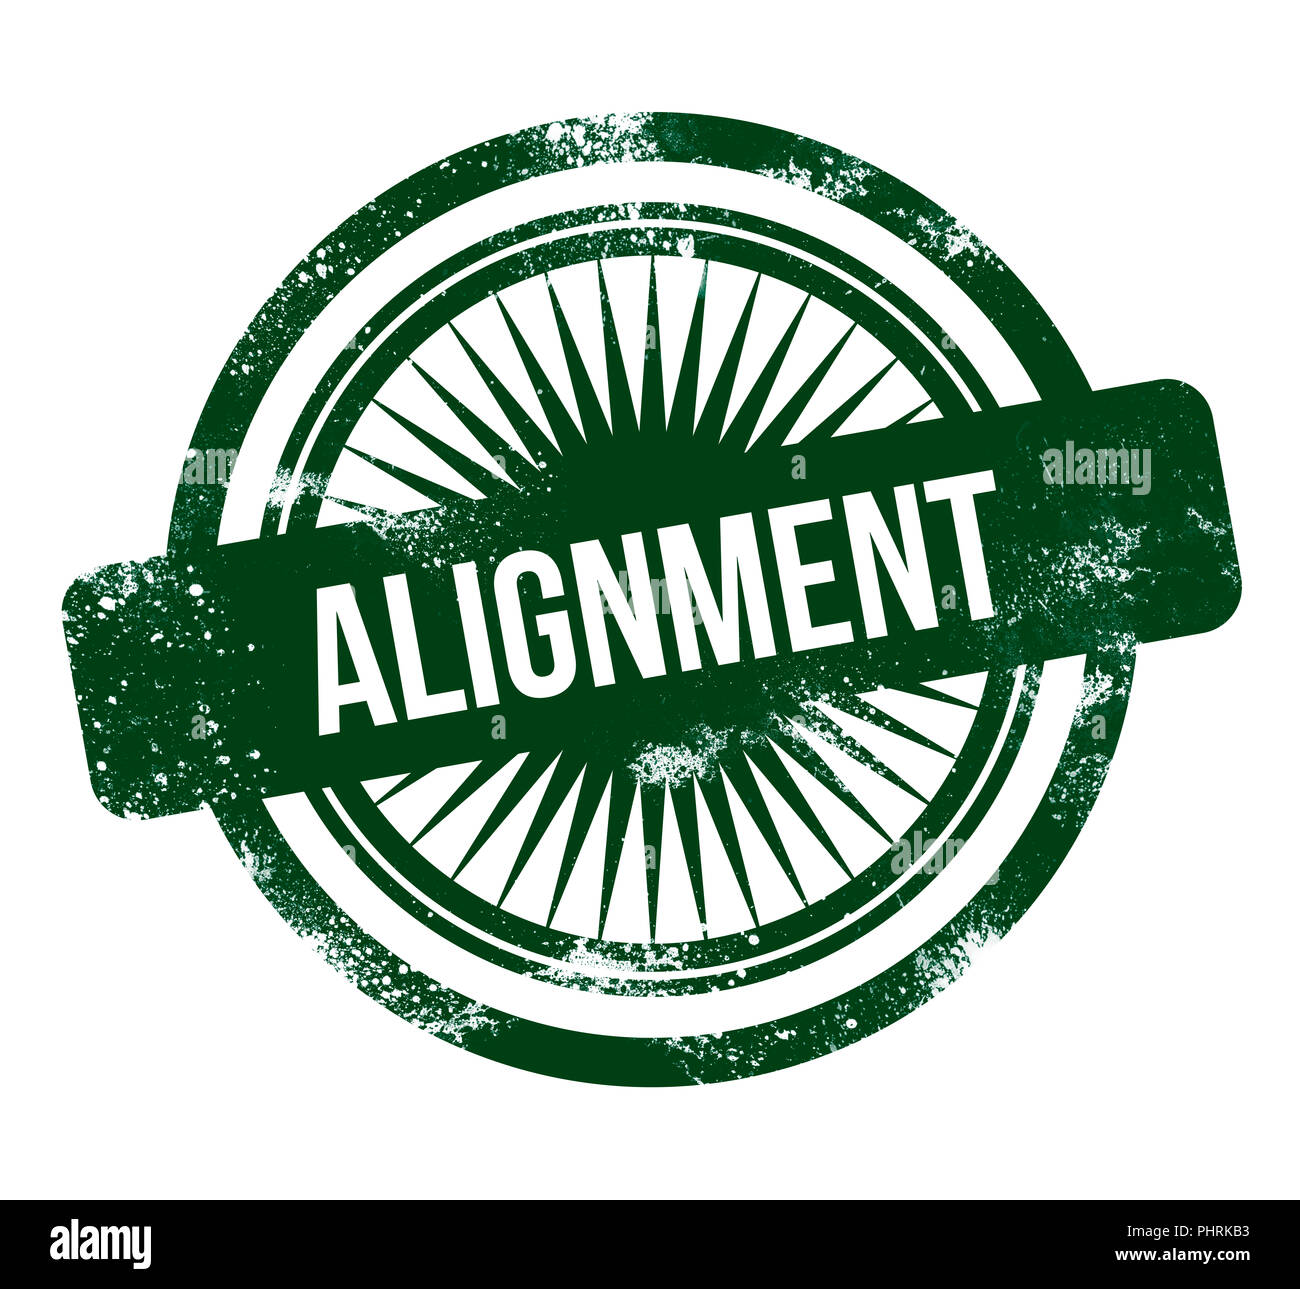 Alignment - green grunge stamp - Stock Image